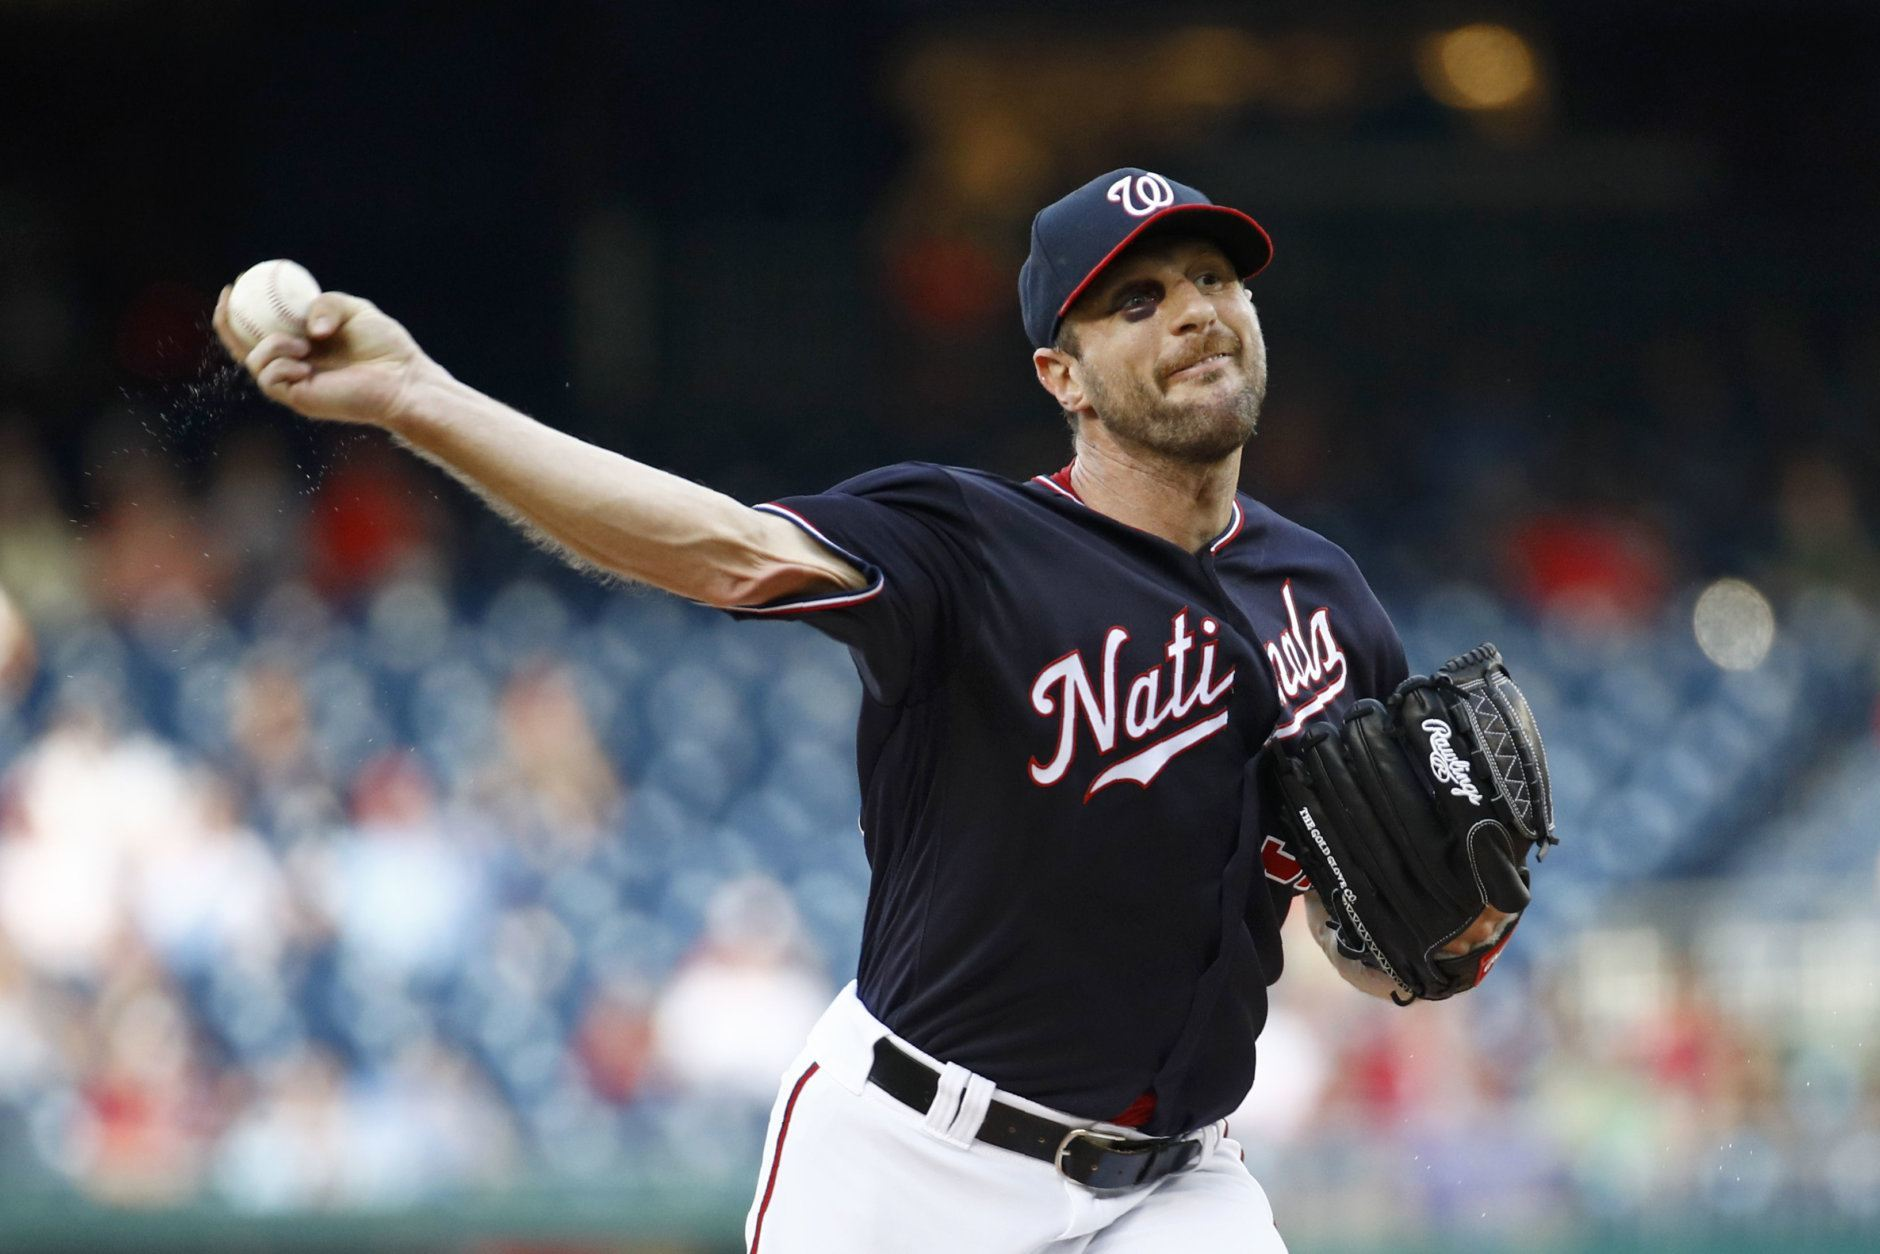 Washington Nationals starting pitcher Max Scherzer throws to the Philadelphia Phillies in the first inning of the second baseball game of a doubleheader, Wednesday, June 19, 2019, in Washington. (AP Photo/Patrick Semansky)